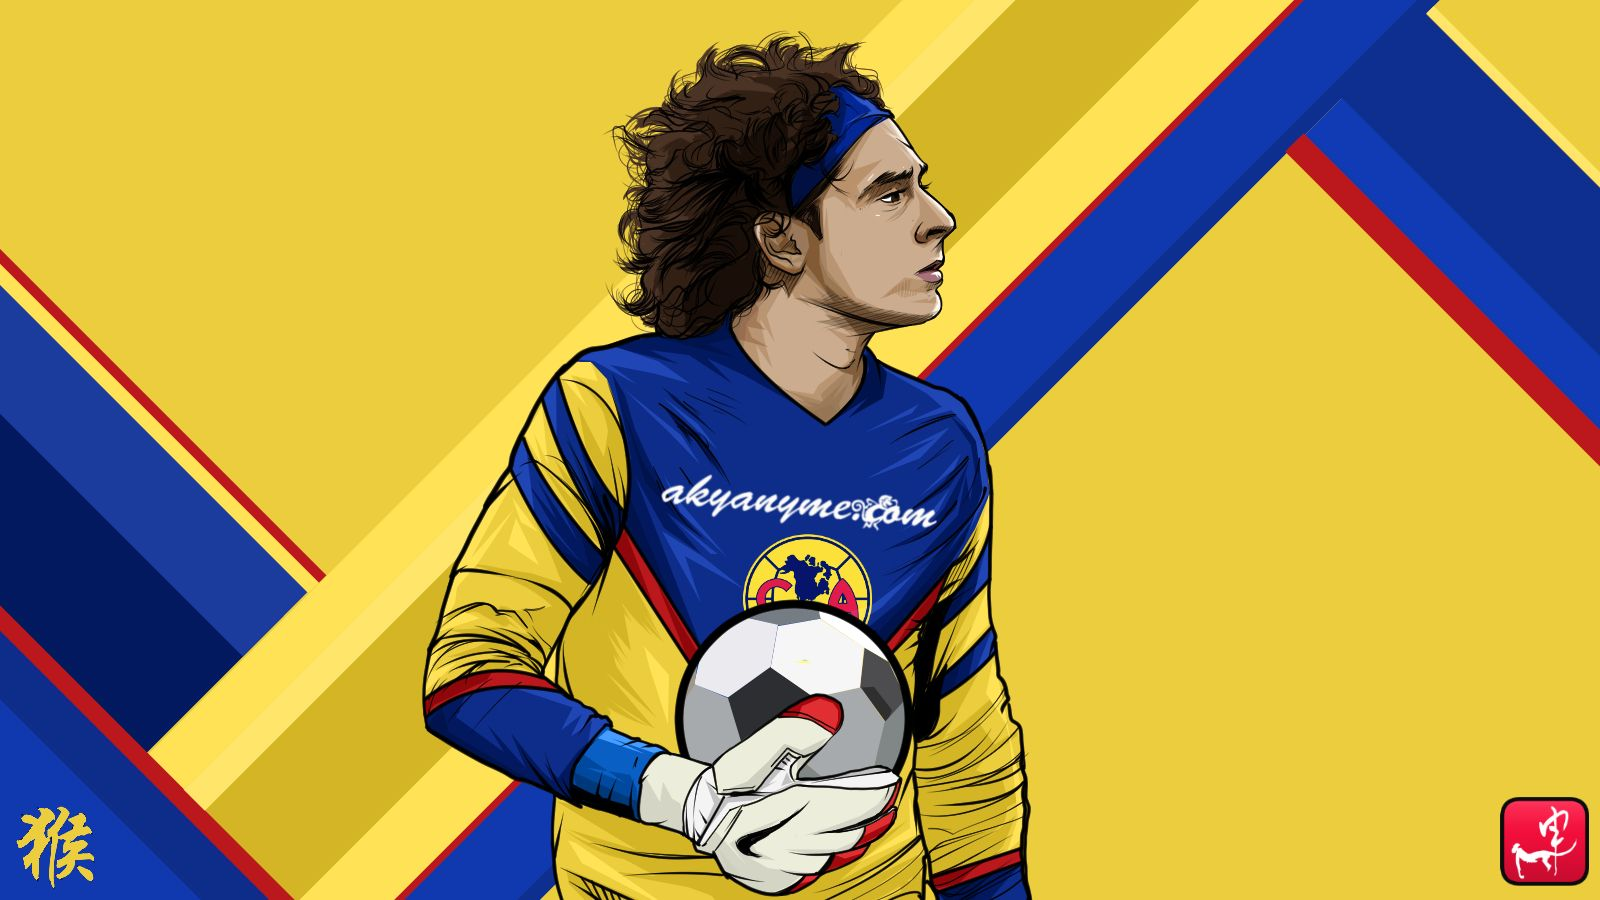 Pin By Ani Ortiz On Fondos Fut T Soccer Football And